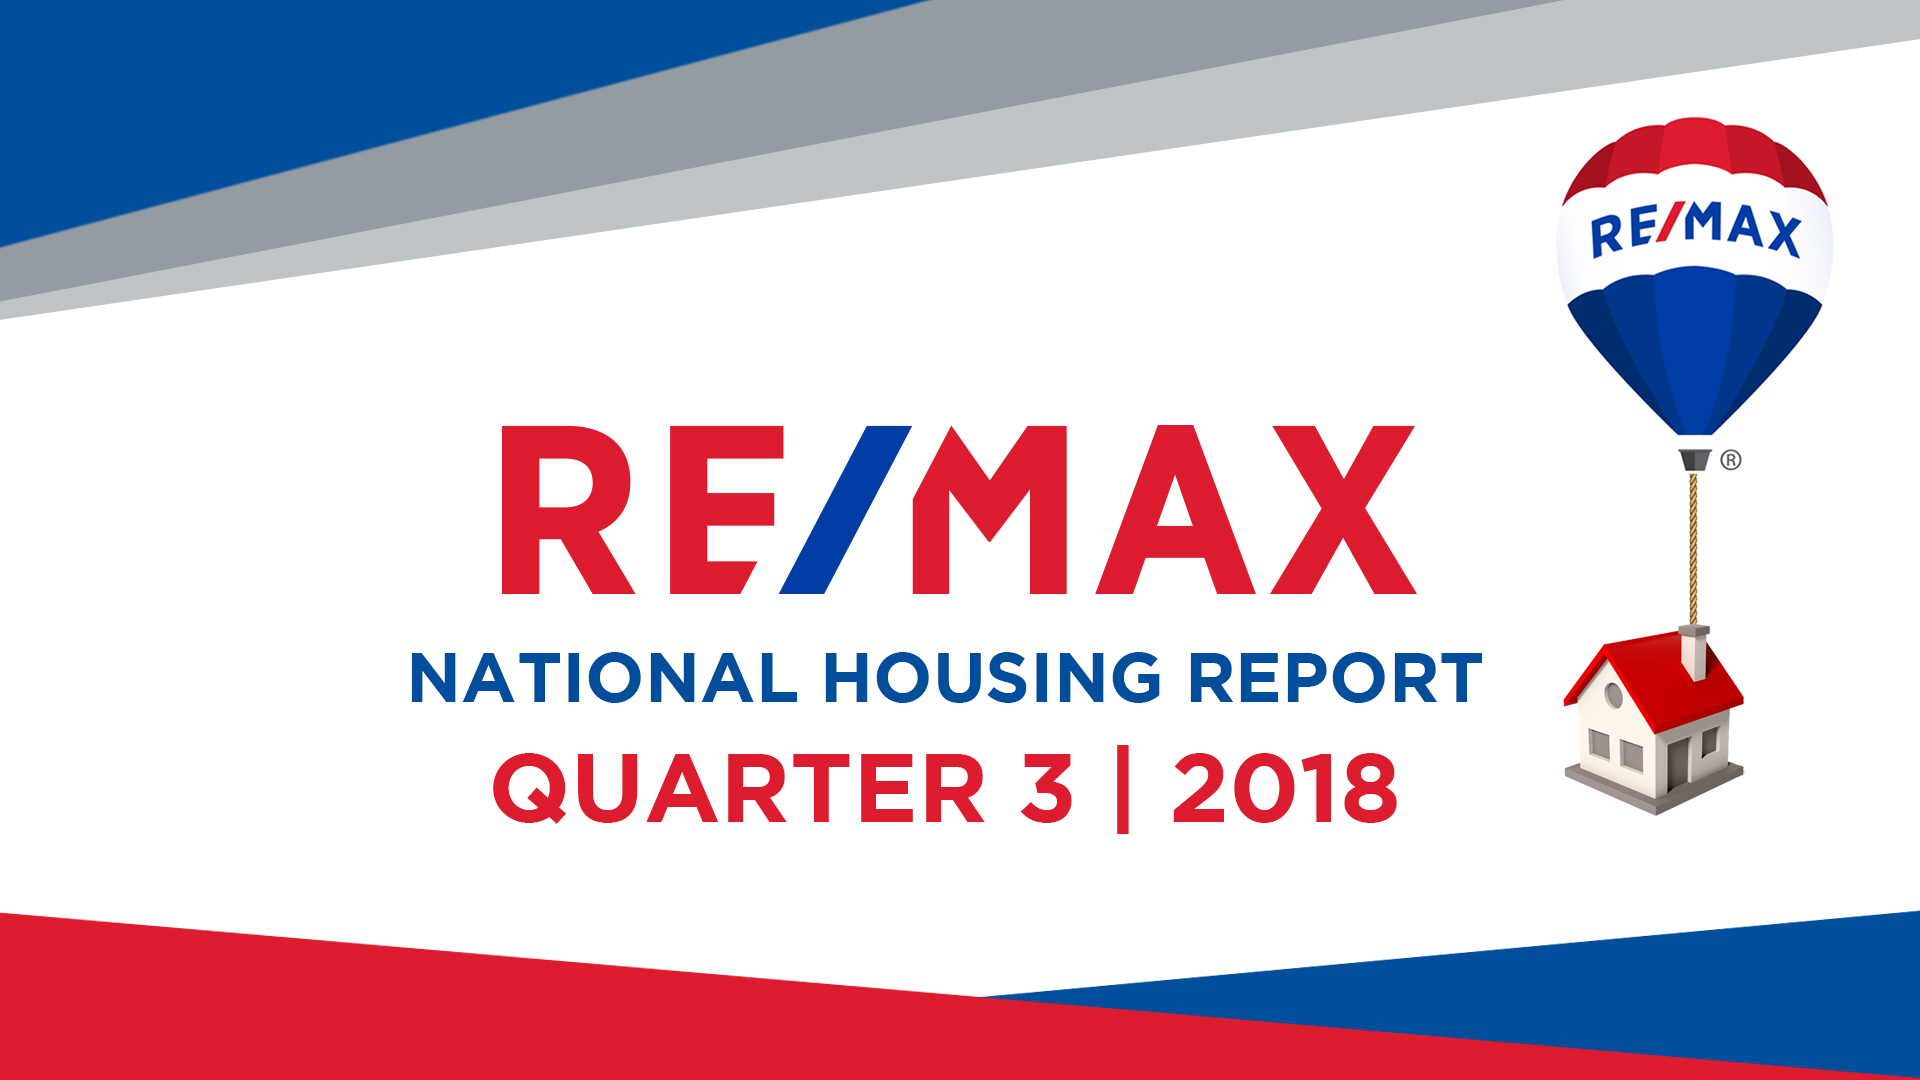 RE/MAX NATIONAL HOUSING REPORT Q3 2018